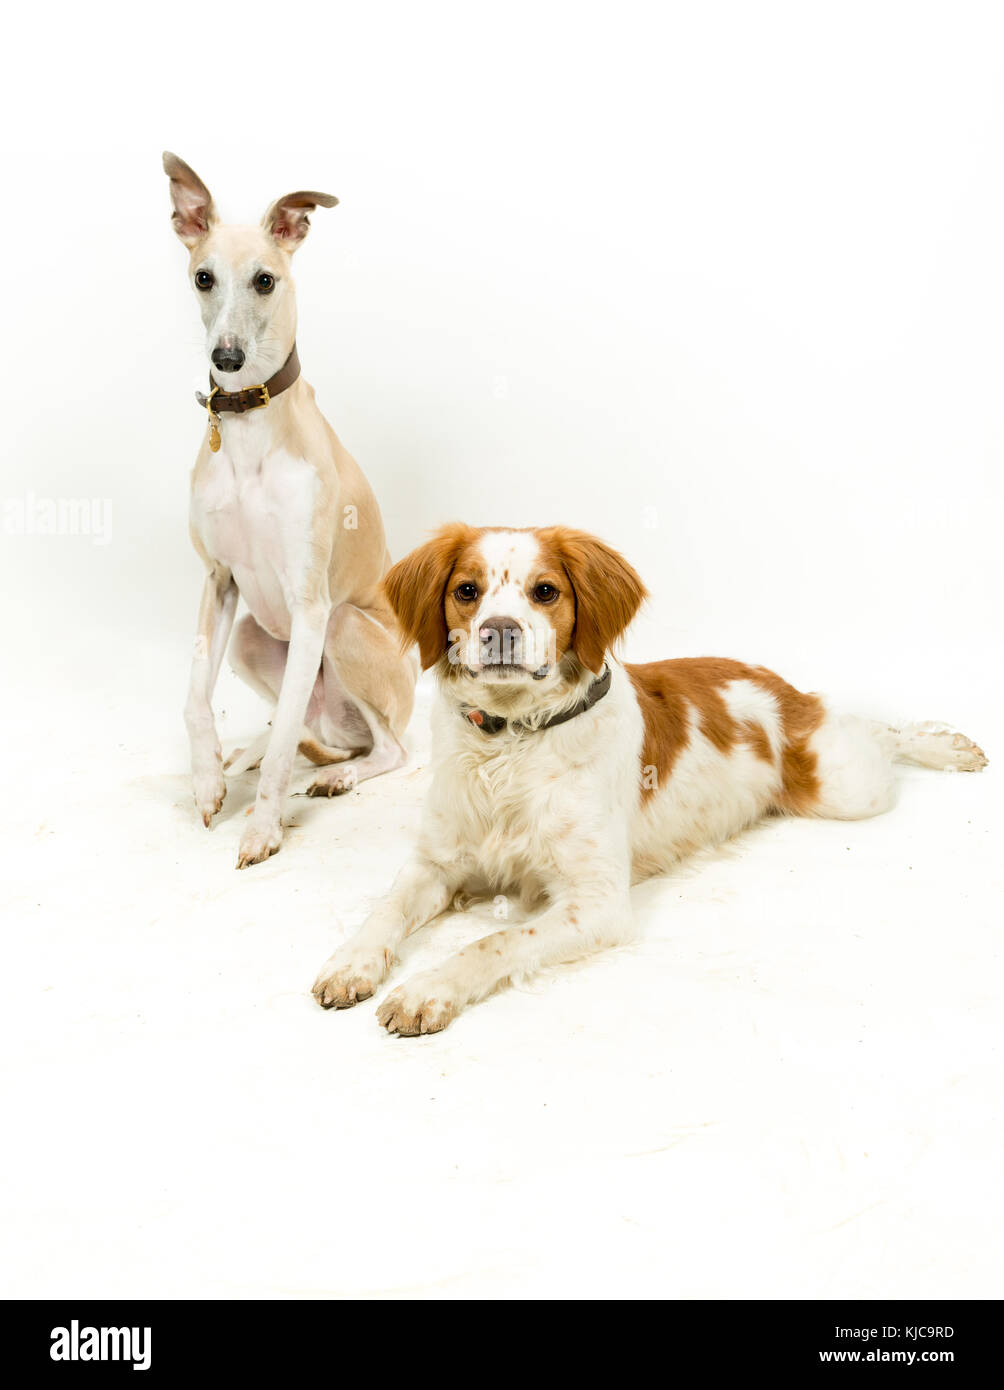 Whippet & Brittany Spaniel Dogs on White Background Stock Photo